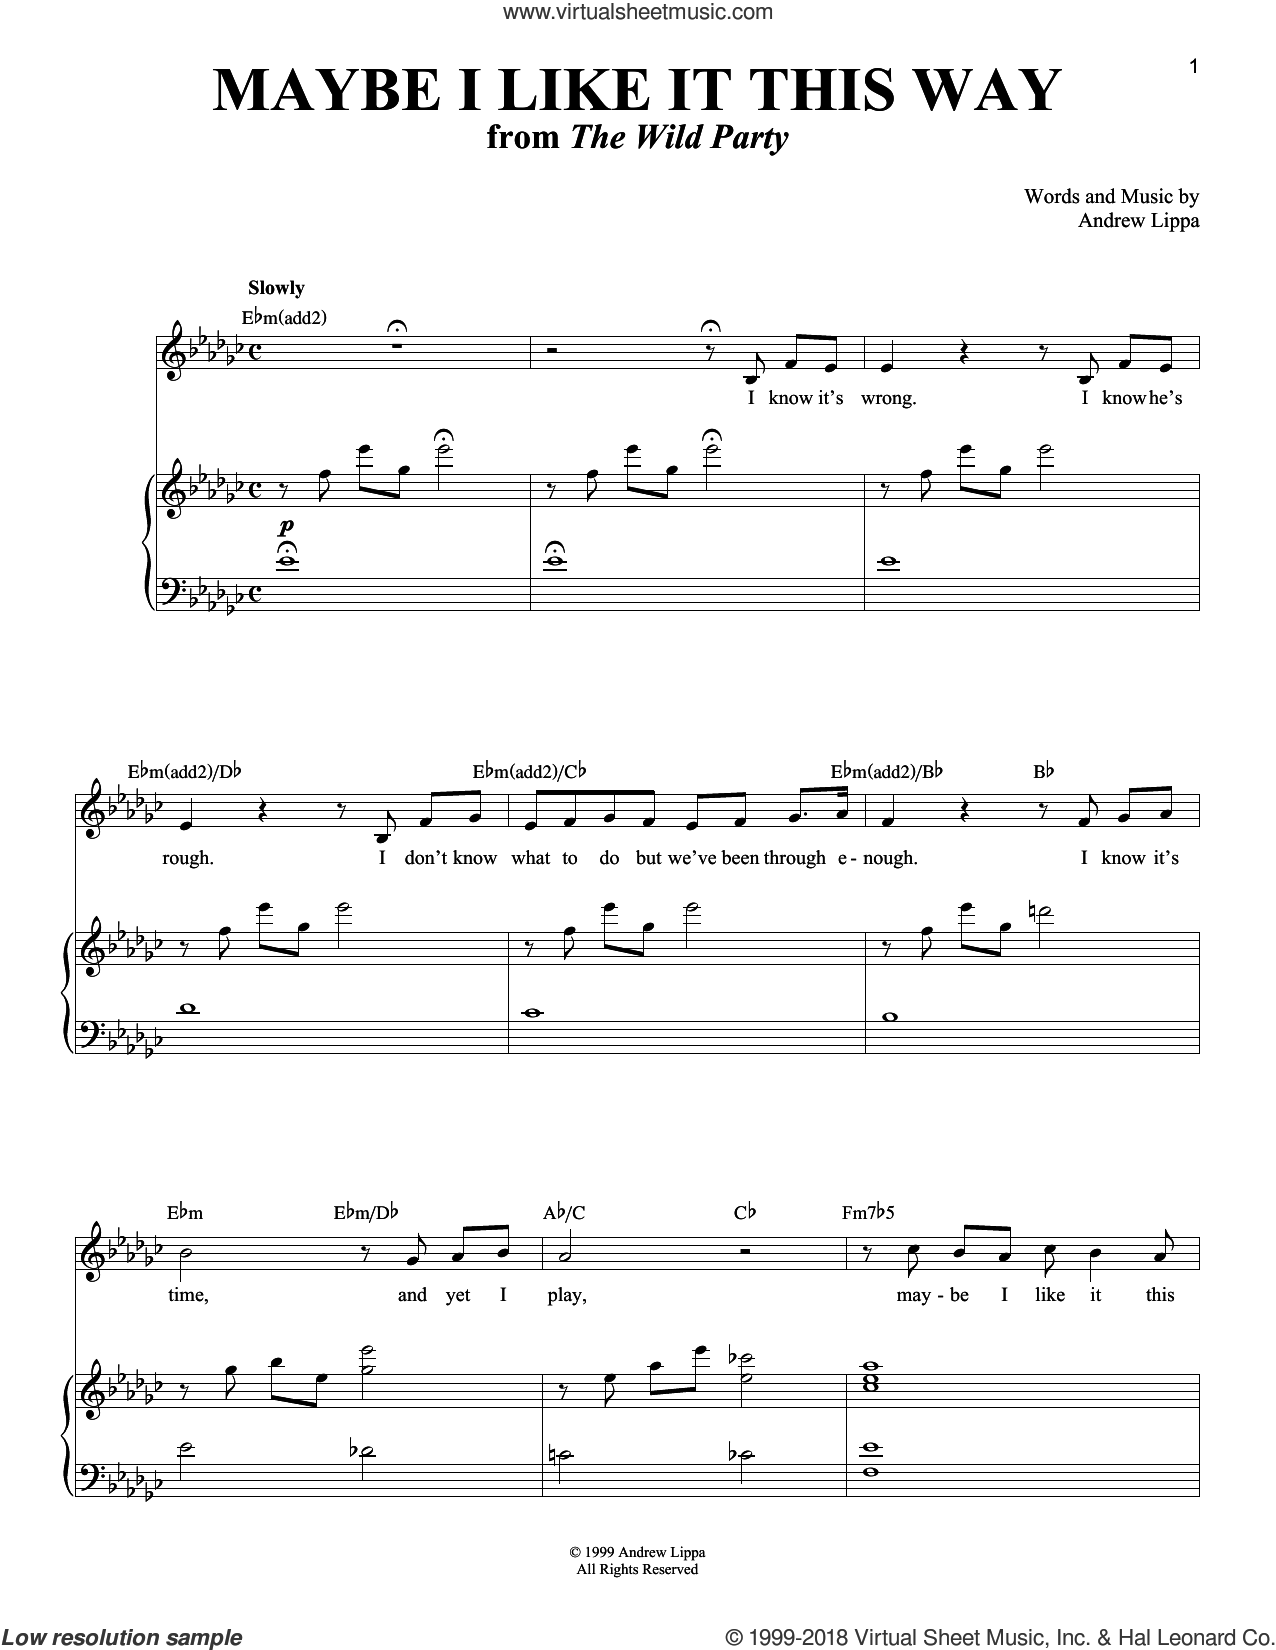 Maybe I Like It This Way sheet music for voice and piano by Andrew Lippa, intermediate skill level